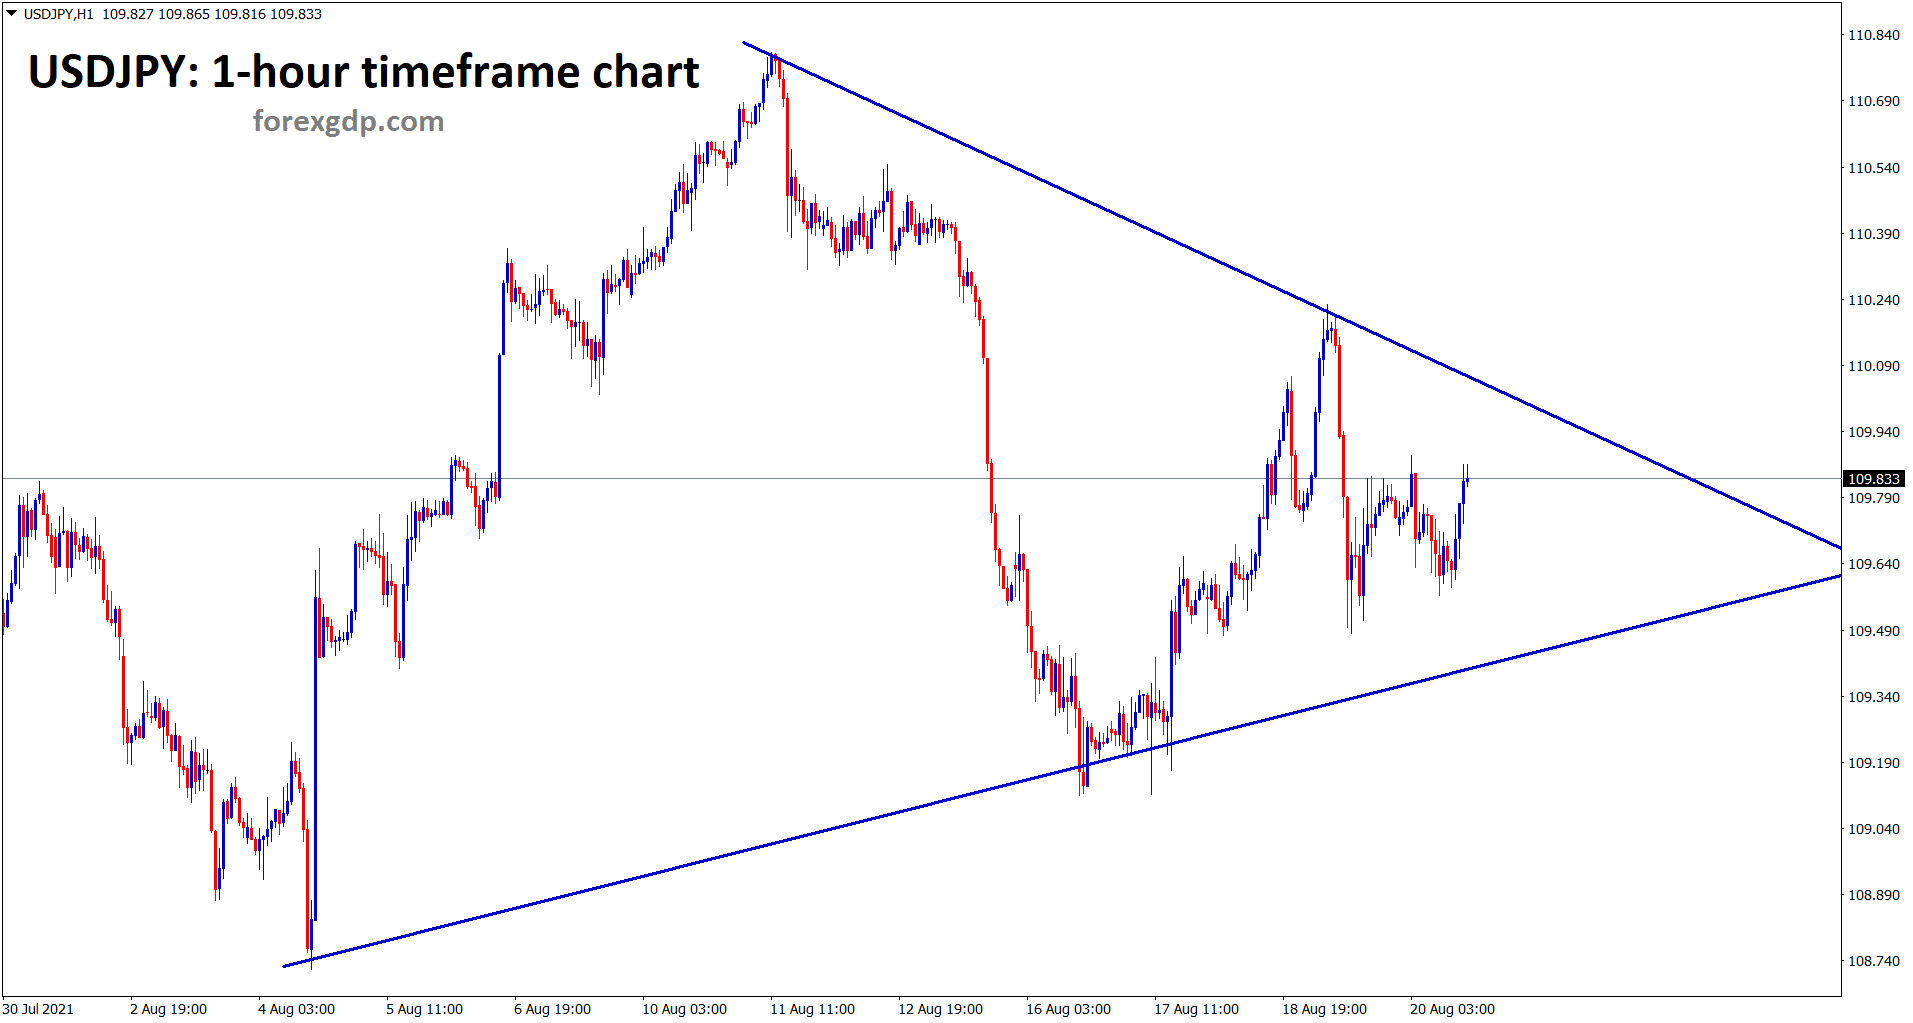 USDJPY has formed a symmetrical triangle pattern in the 1 hour timeframe